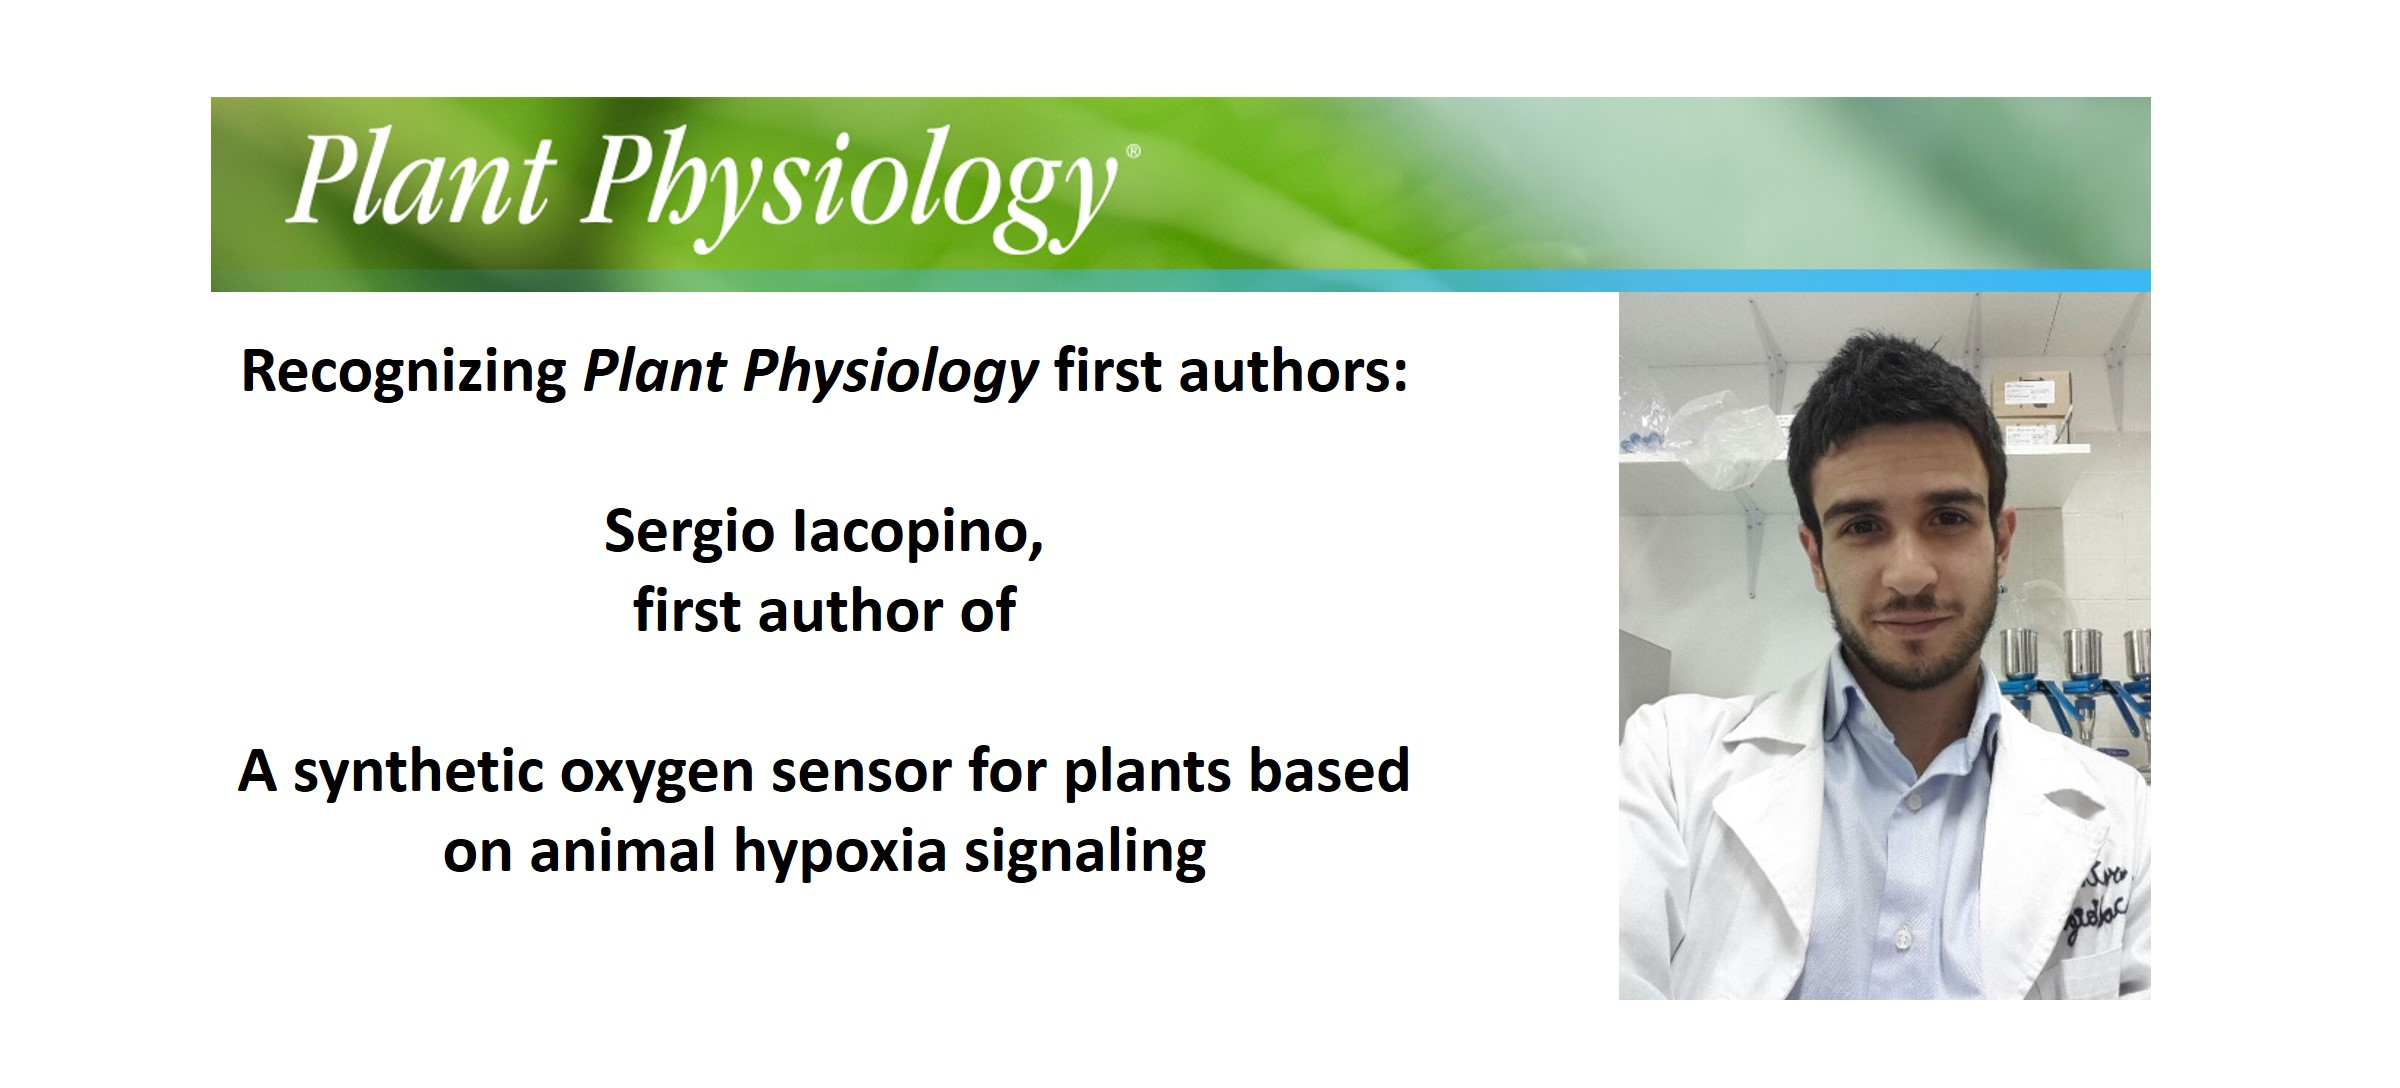 Plantae Recognizing Plant Physiology First Authors Sergio Animal Cell And Plants On Pinterest Iacopino